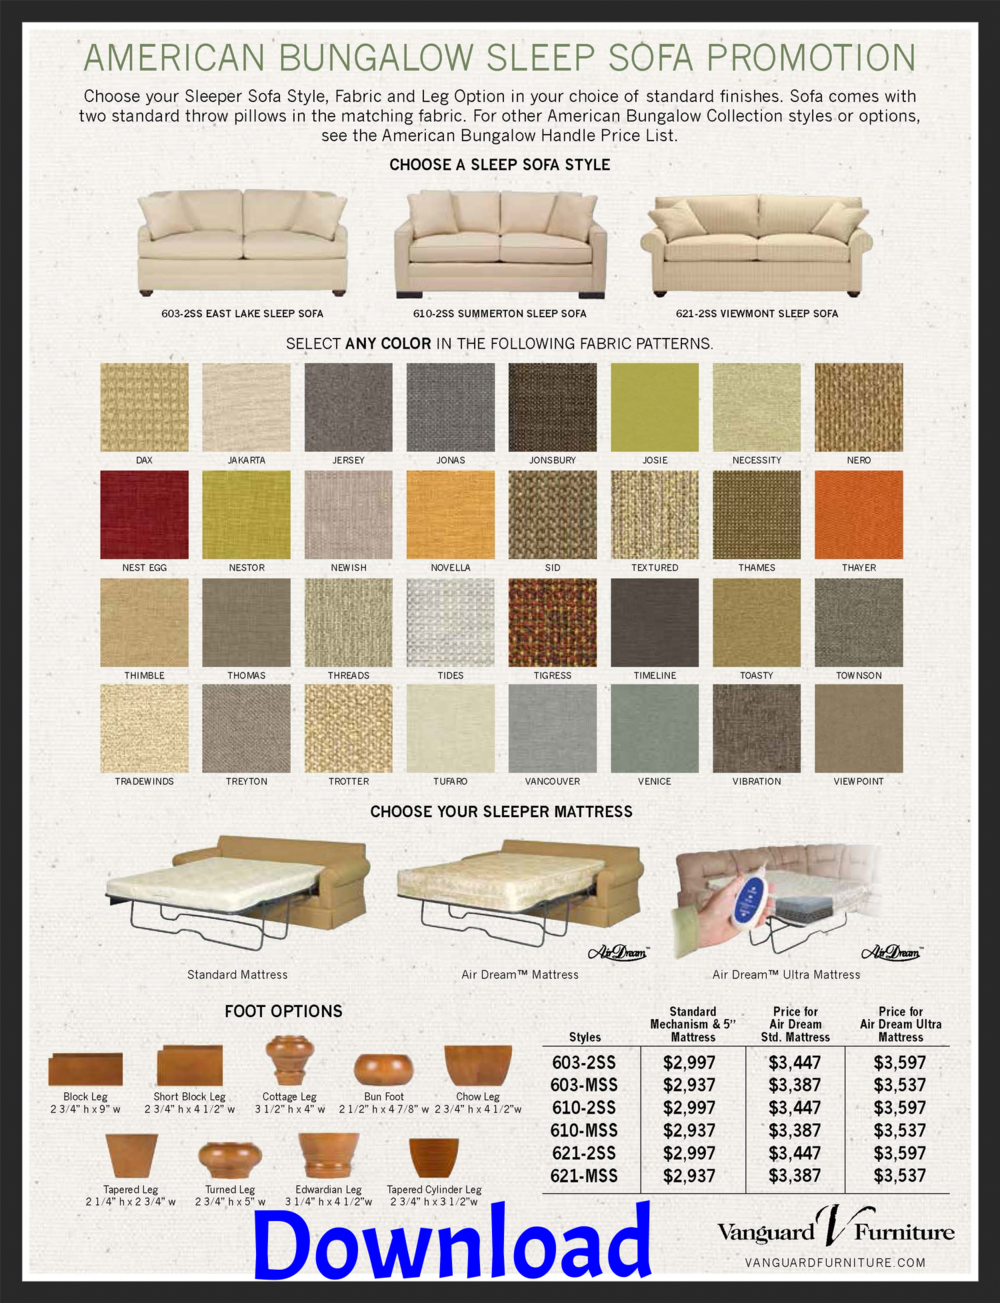 Vanguard's American Bungalow Sleep Sofa Program